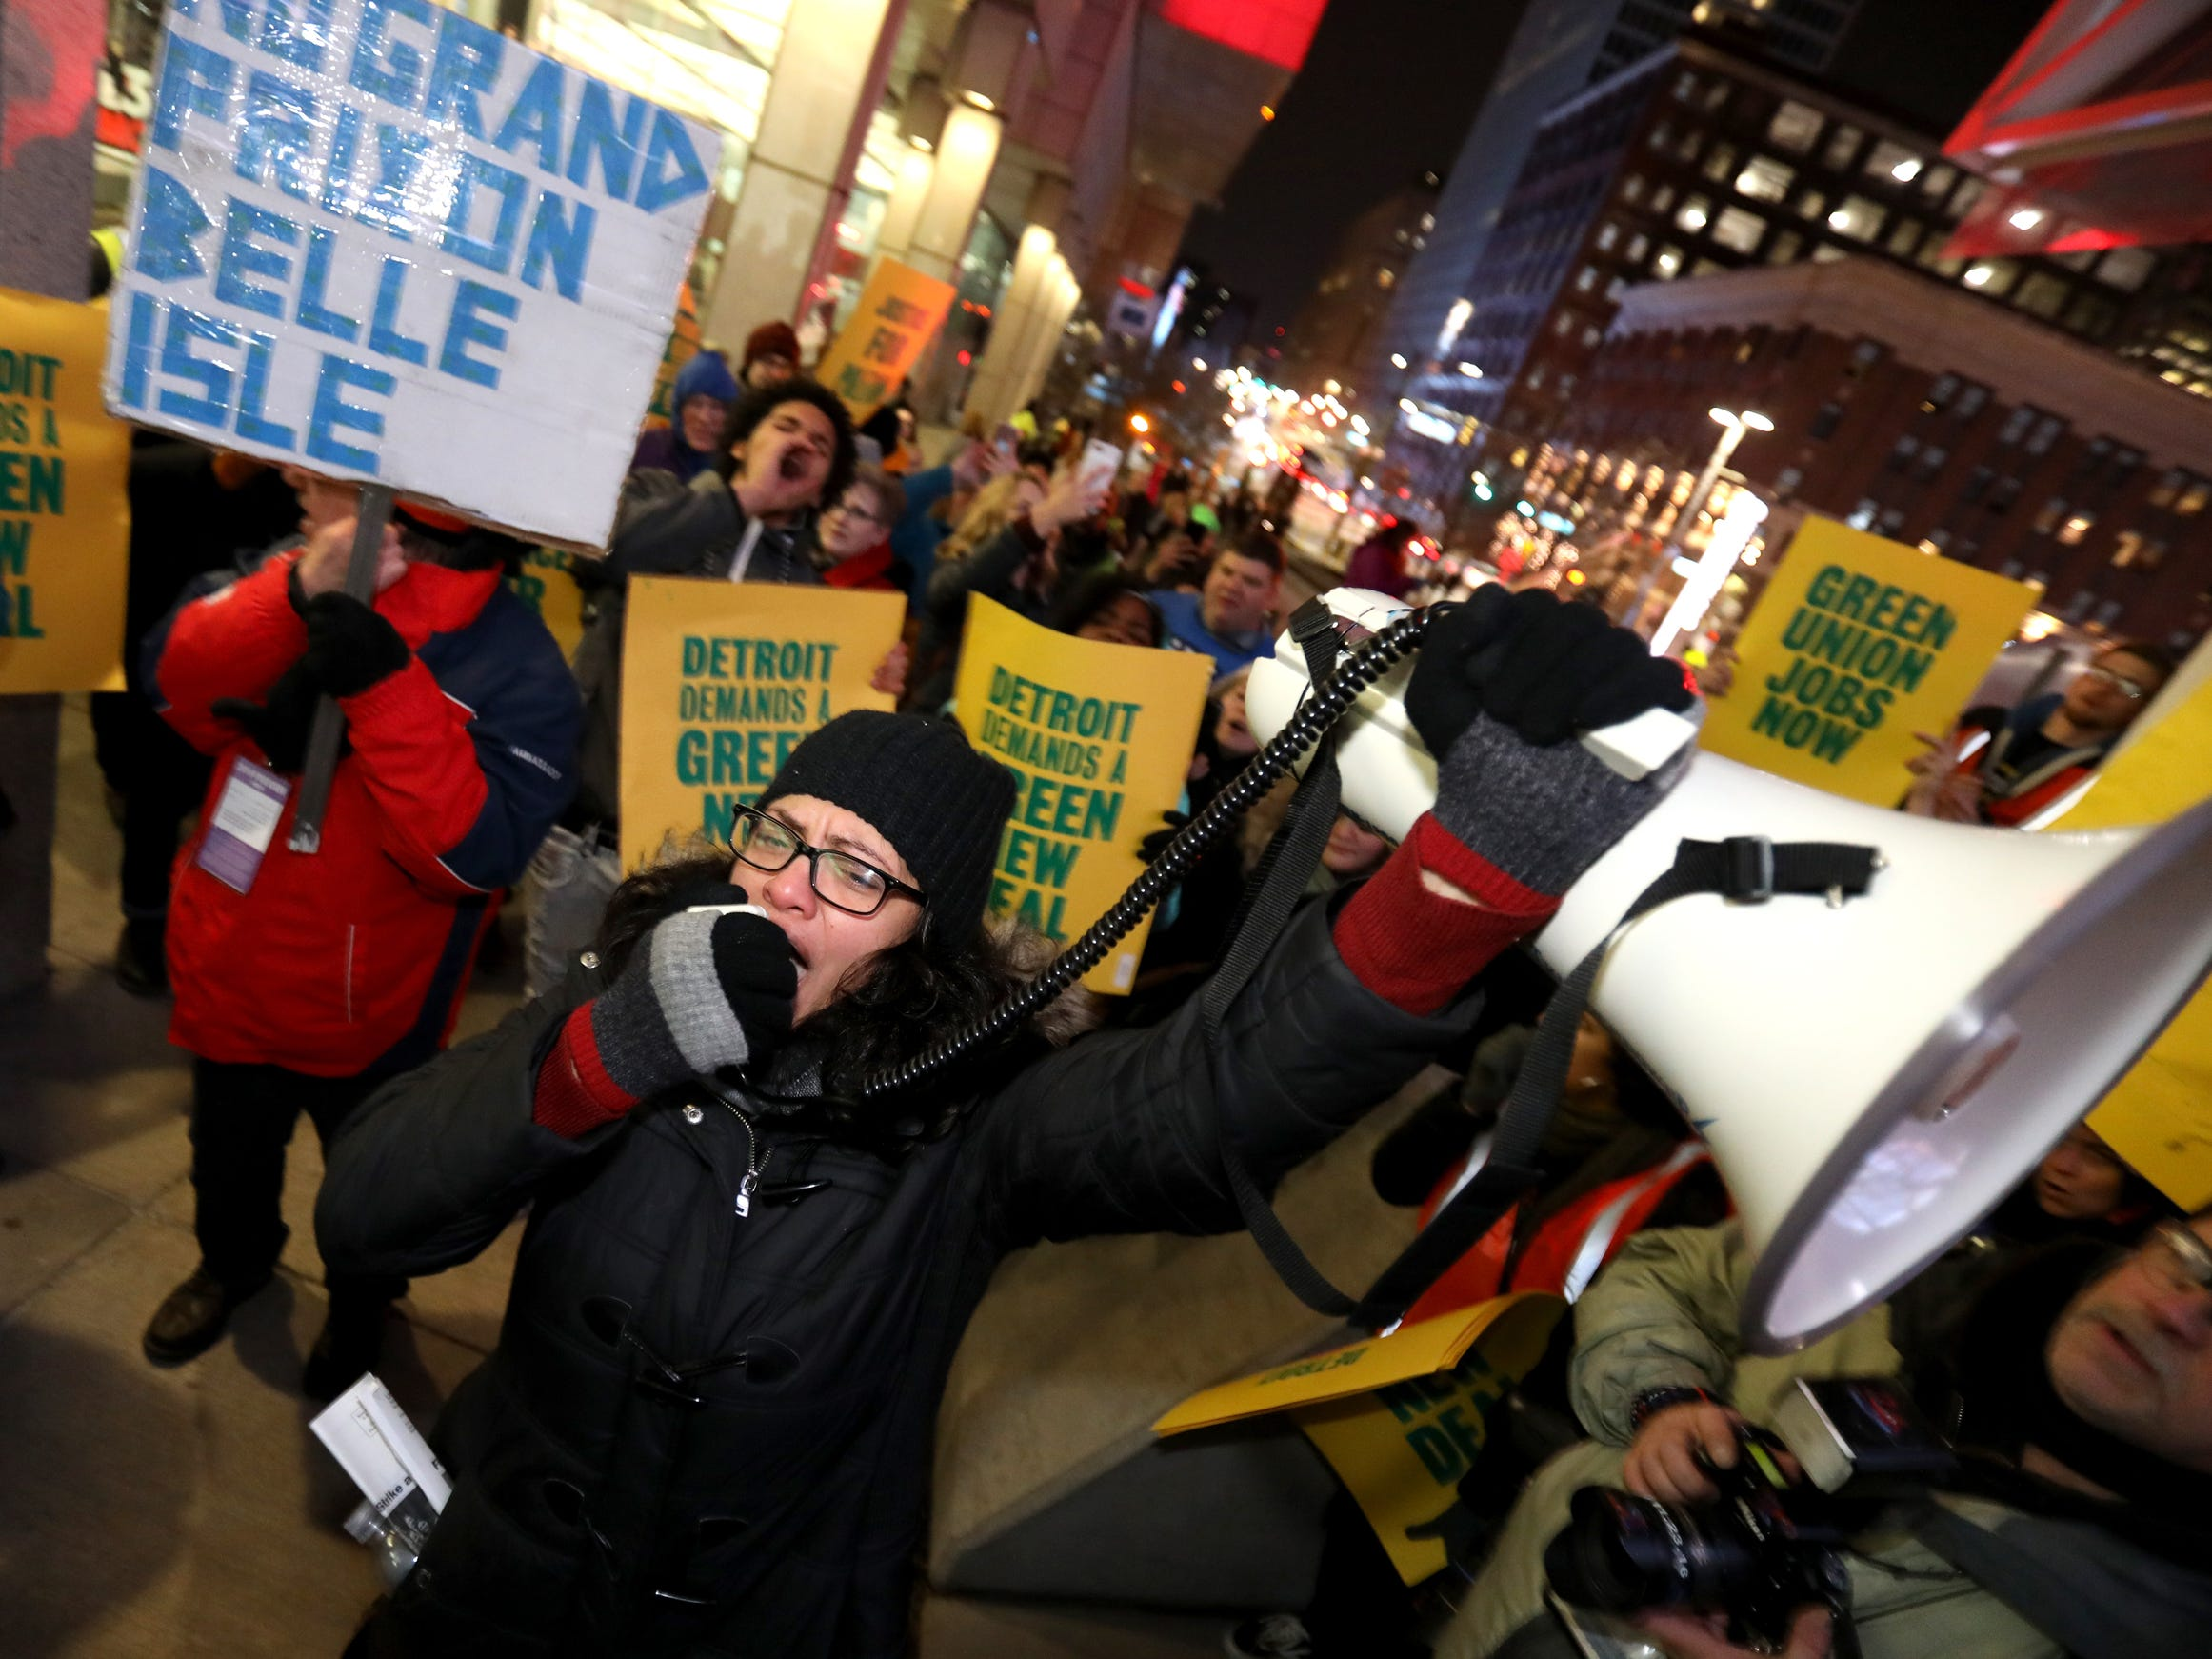 Using a bullhorn, Rep Rashida Tlaib who represents Michigan's 13th district in Congress talks with the GM Poletown protestors outside Cobo Center during the start of the 2019 North American International Auto Show Charity Preview at Cobo Center in Detroit on Friday, January 18, 2019. Over 300 protestors were outside as Charity Preview attendees went inside the event.